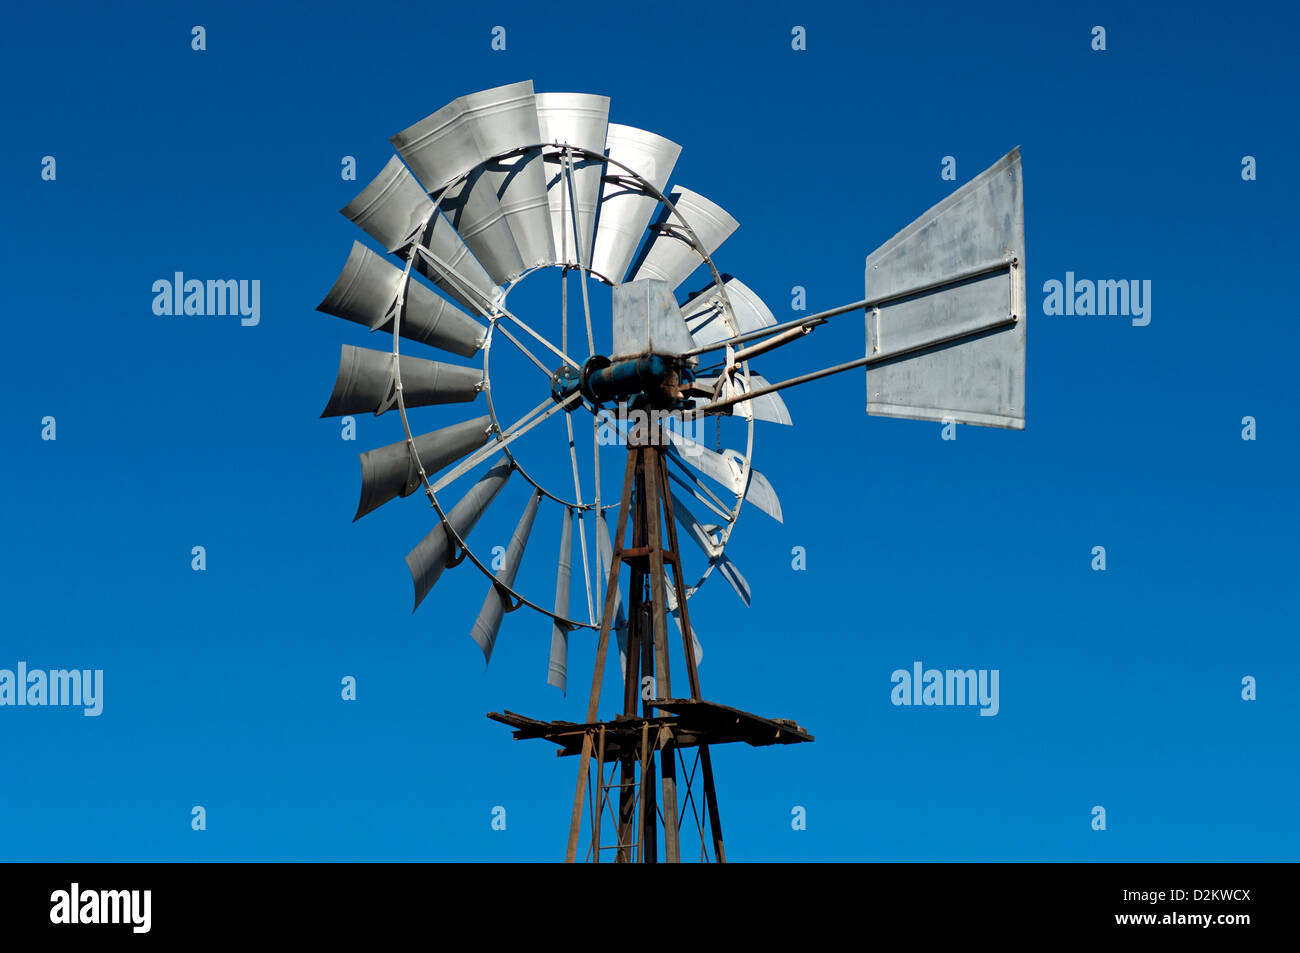 Top of a multi-bladed wind pump with a weather vane for pumping groundwater, Namaqualand, South Africa - Stock Image